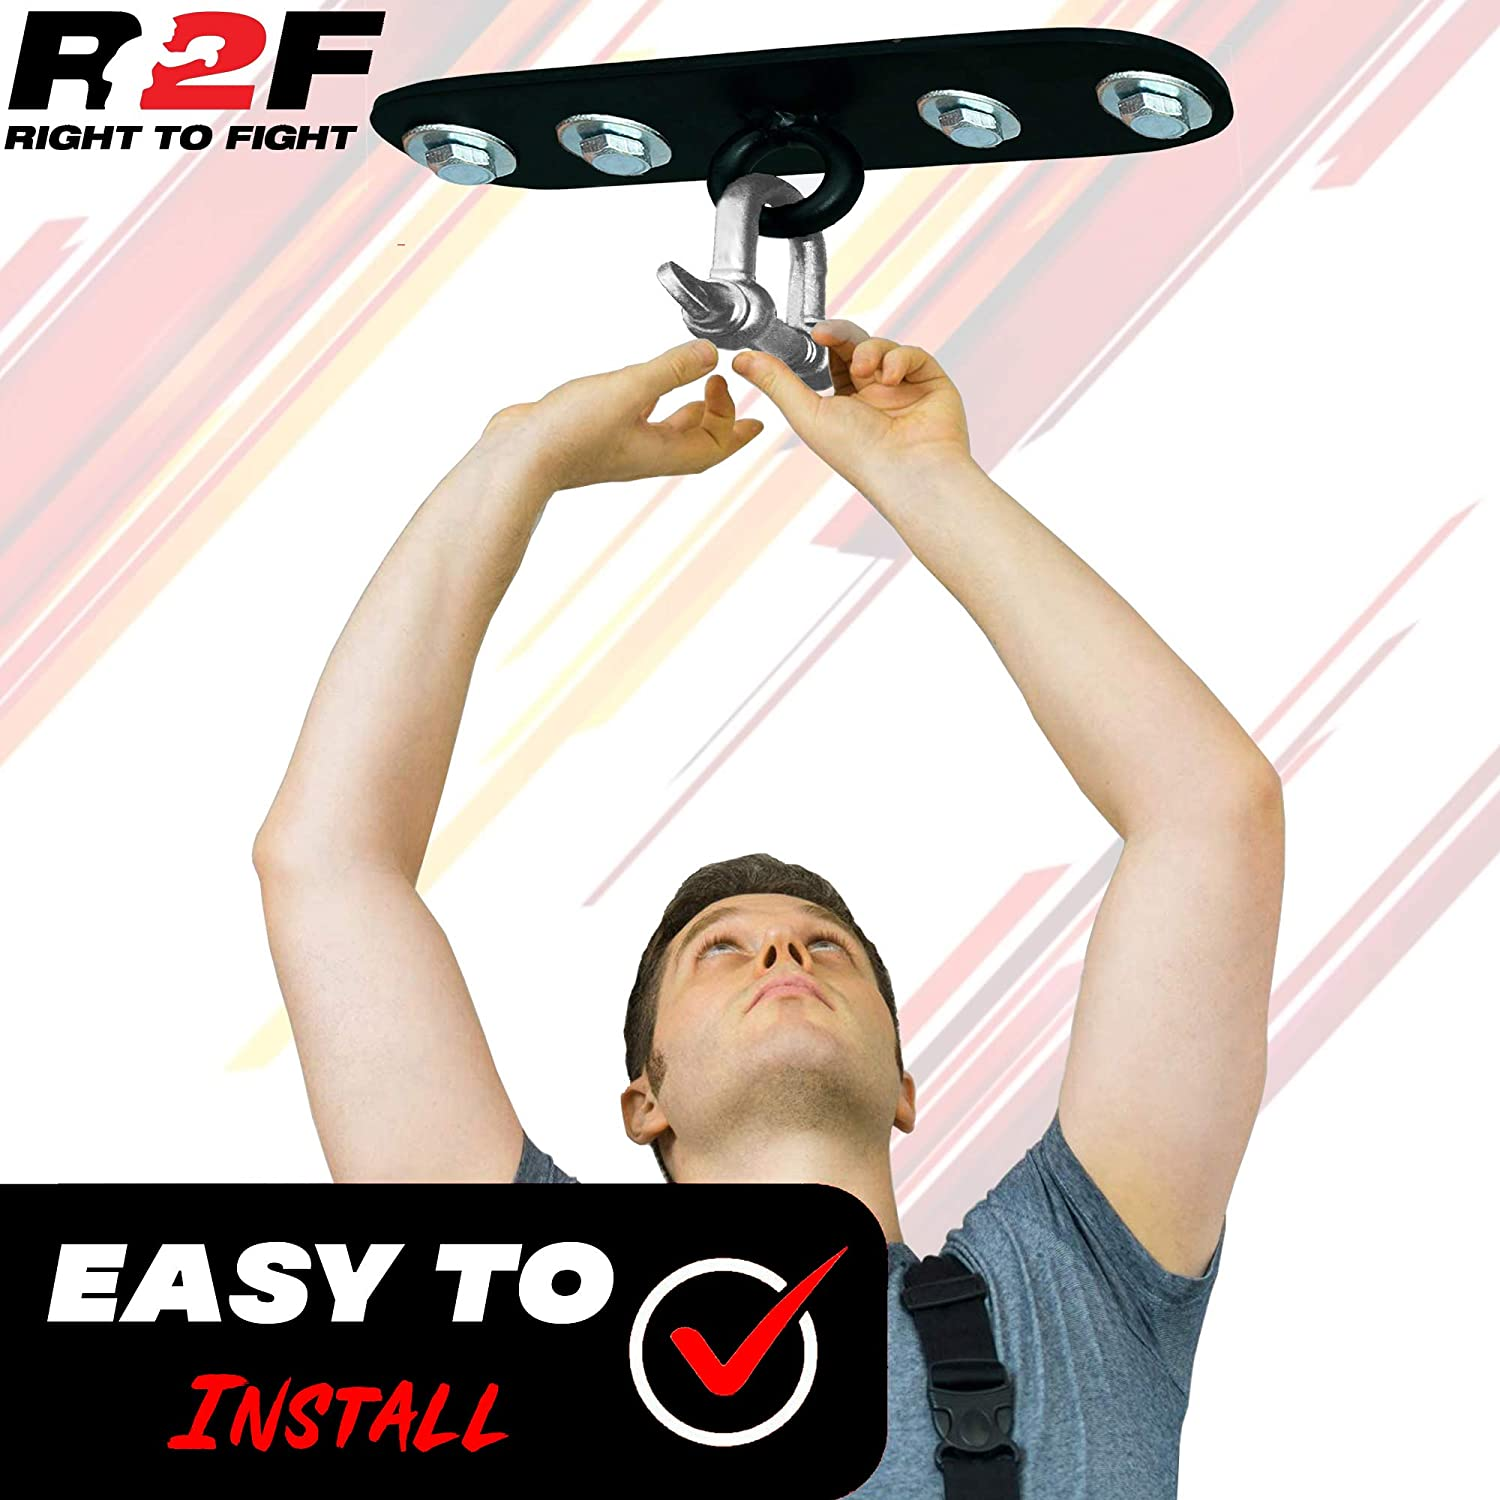 R2F Punch Bag 10 Iron Ceiling Hook /& Chain Fitness Boxing Hanging Mount Steel D-Shackle Swivel Indoor Gym Punching Bag Holding Hanger Set MMA UFC